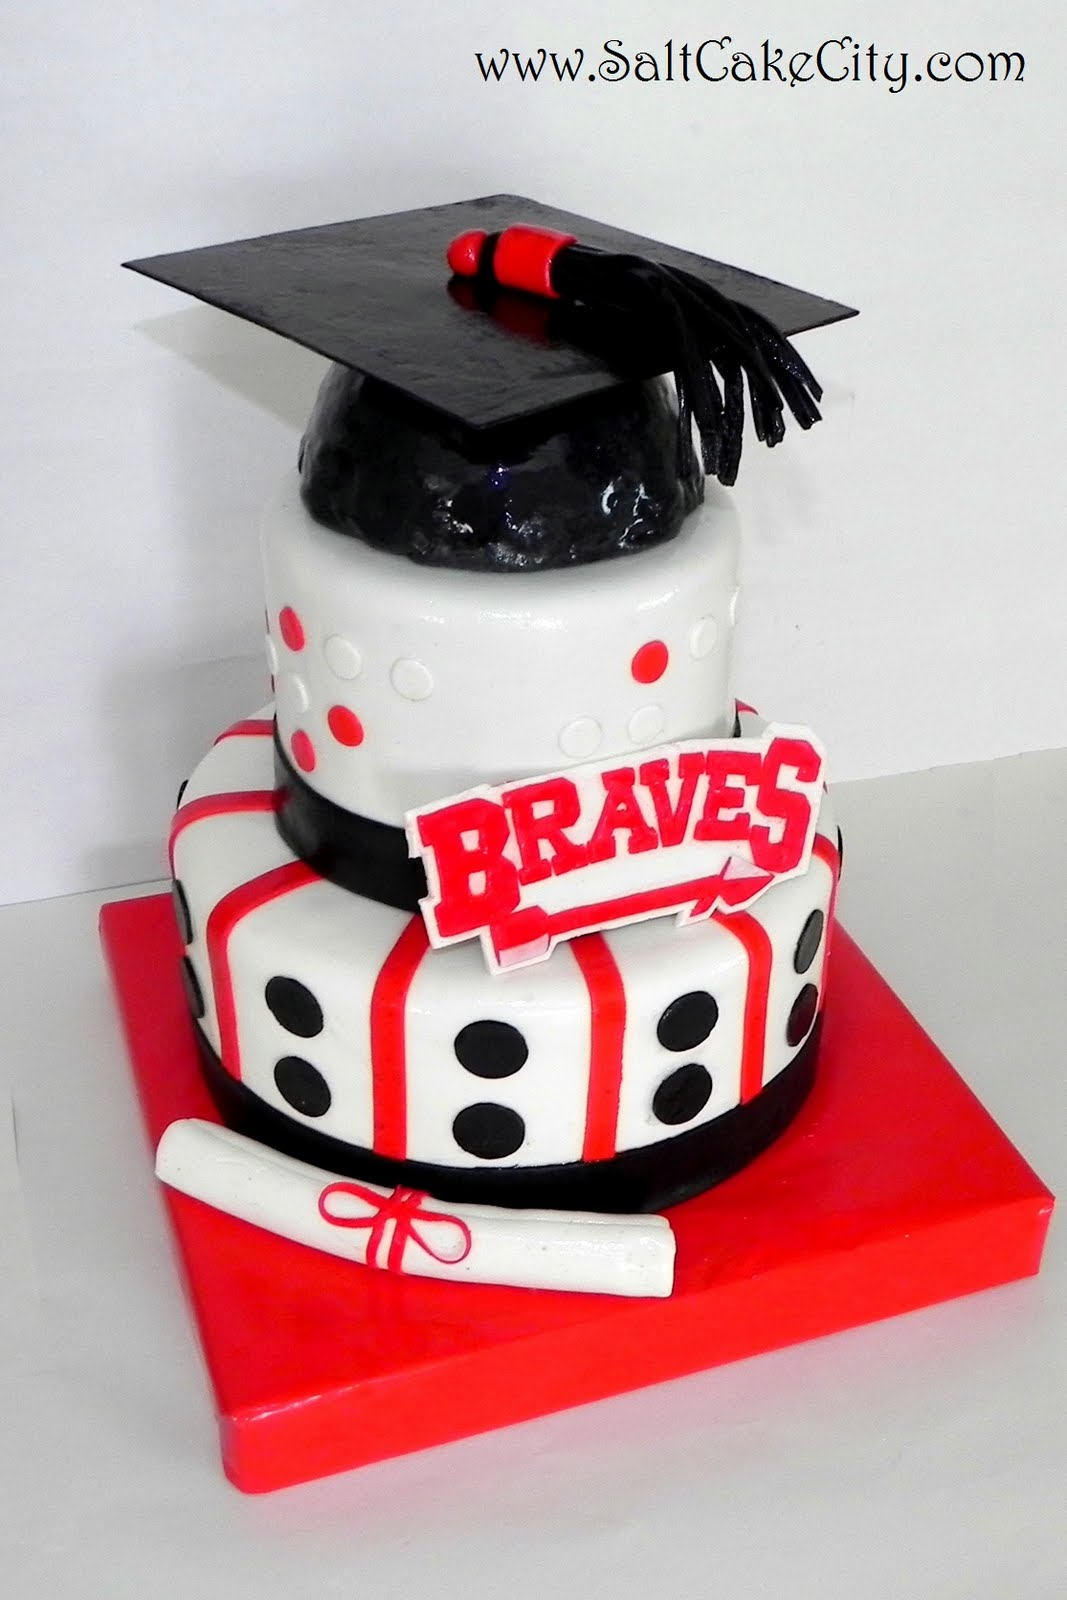 Cake Decorating For Graduation : Graduation Party Cake Graduation Party Cake Ideas 2011 ...